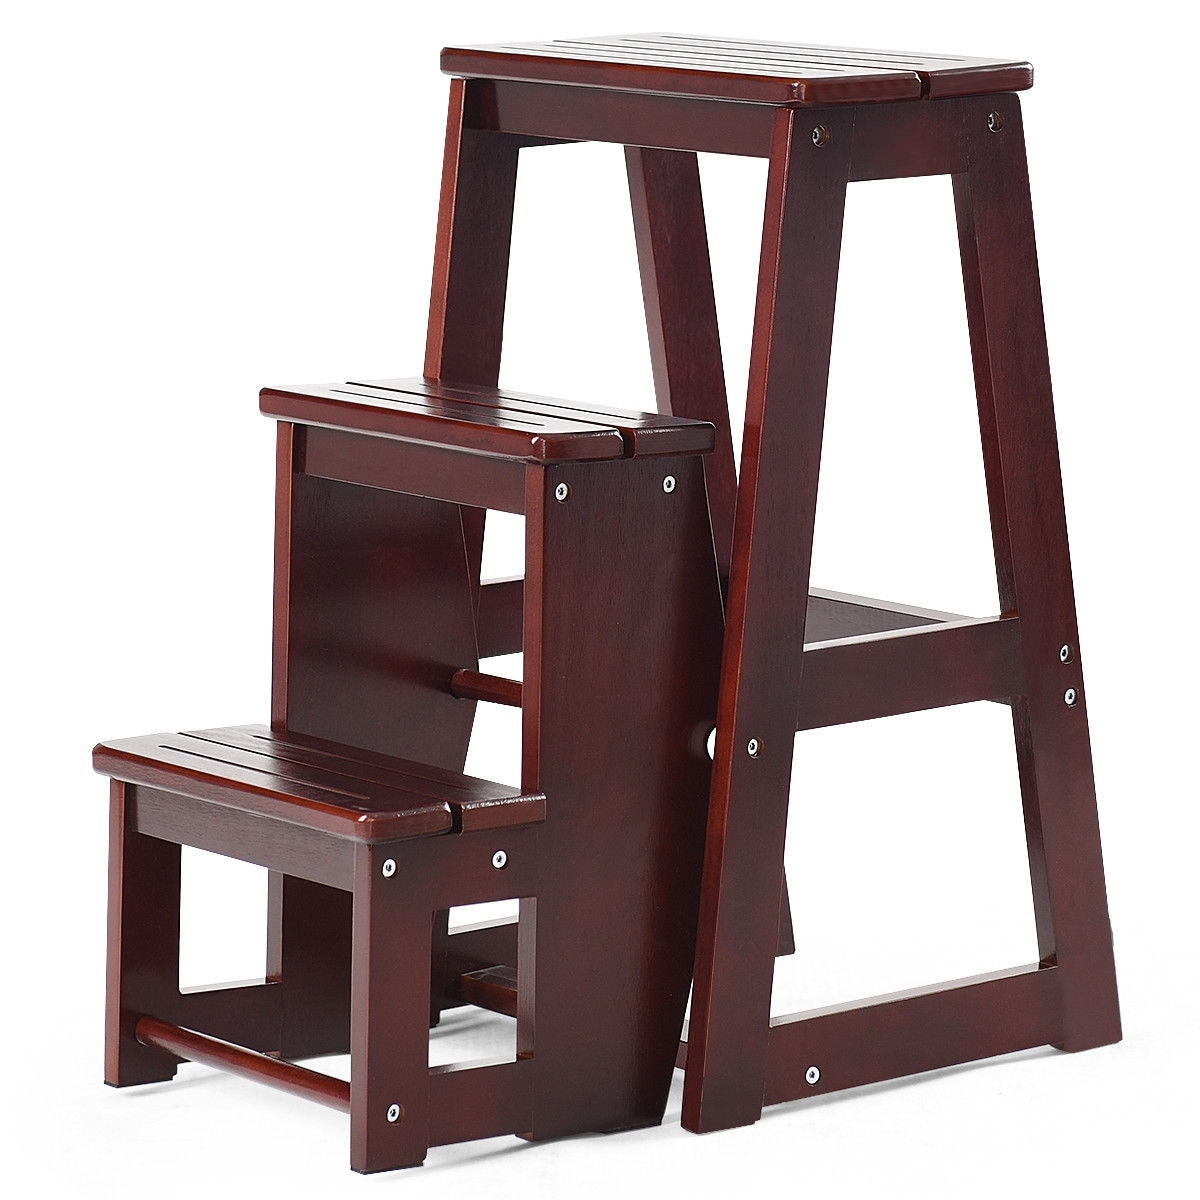 Admirable 5 Steps Wooden Ladder Chair Step Stool Multifunction Squirreltailoven Fun Painted Chair Ideas Images Squirreltailovenorg